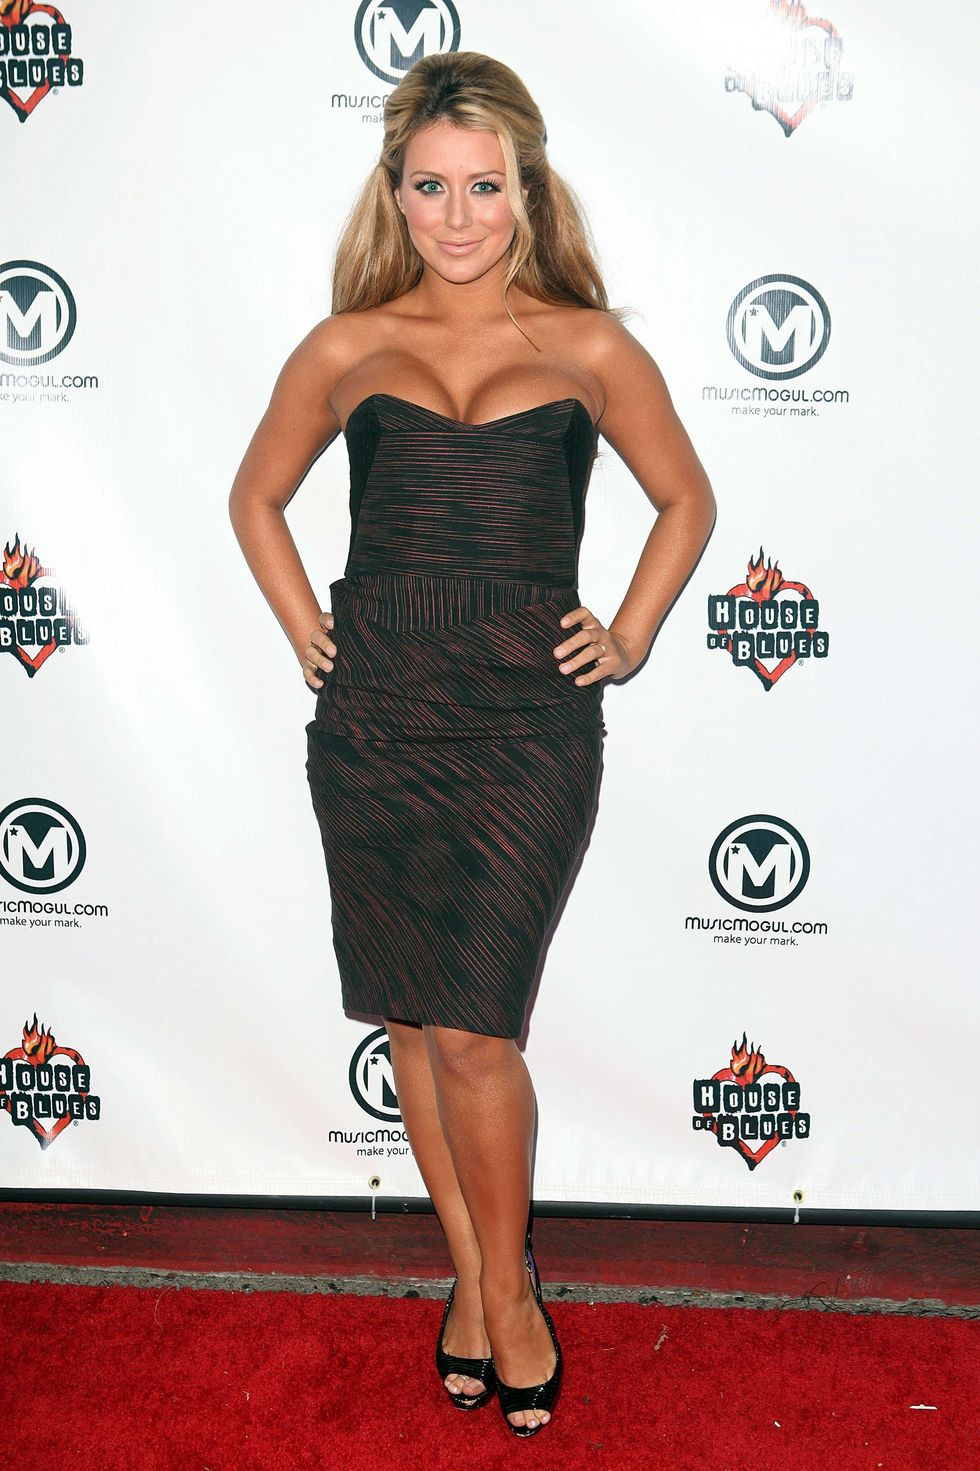 aubrey-oday-musicmoguls-first-music-competition-in-west-hollywood-01